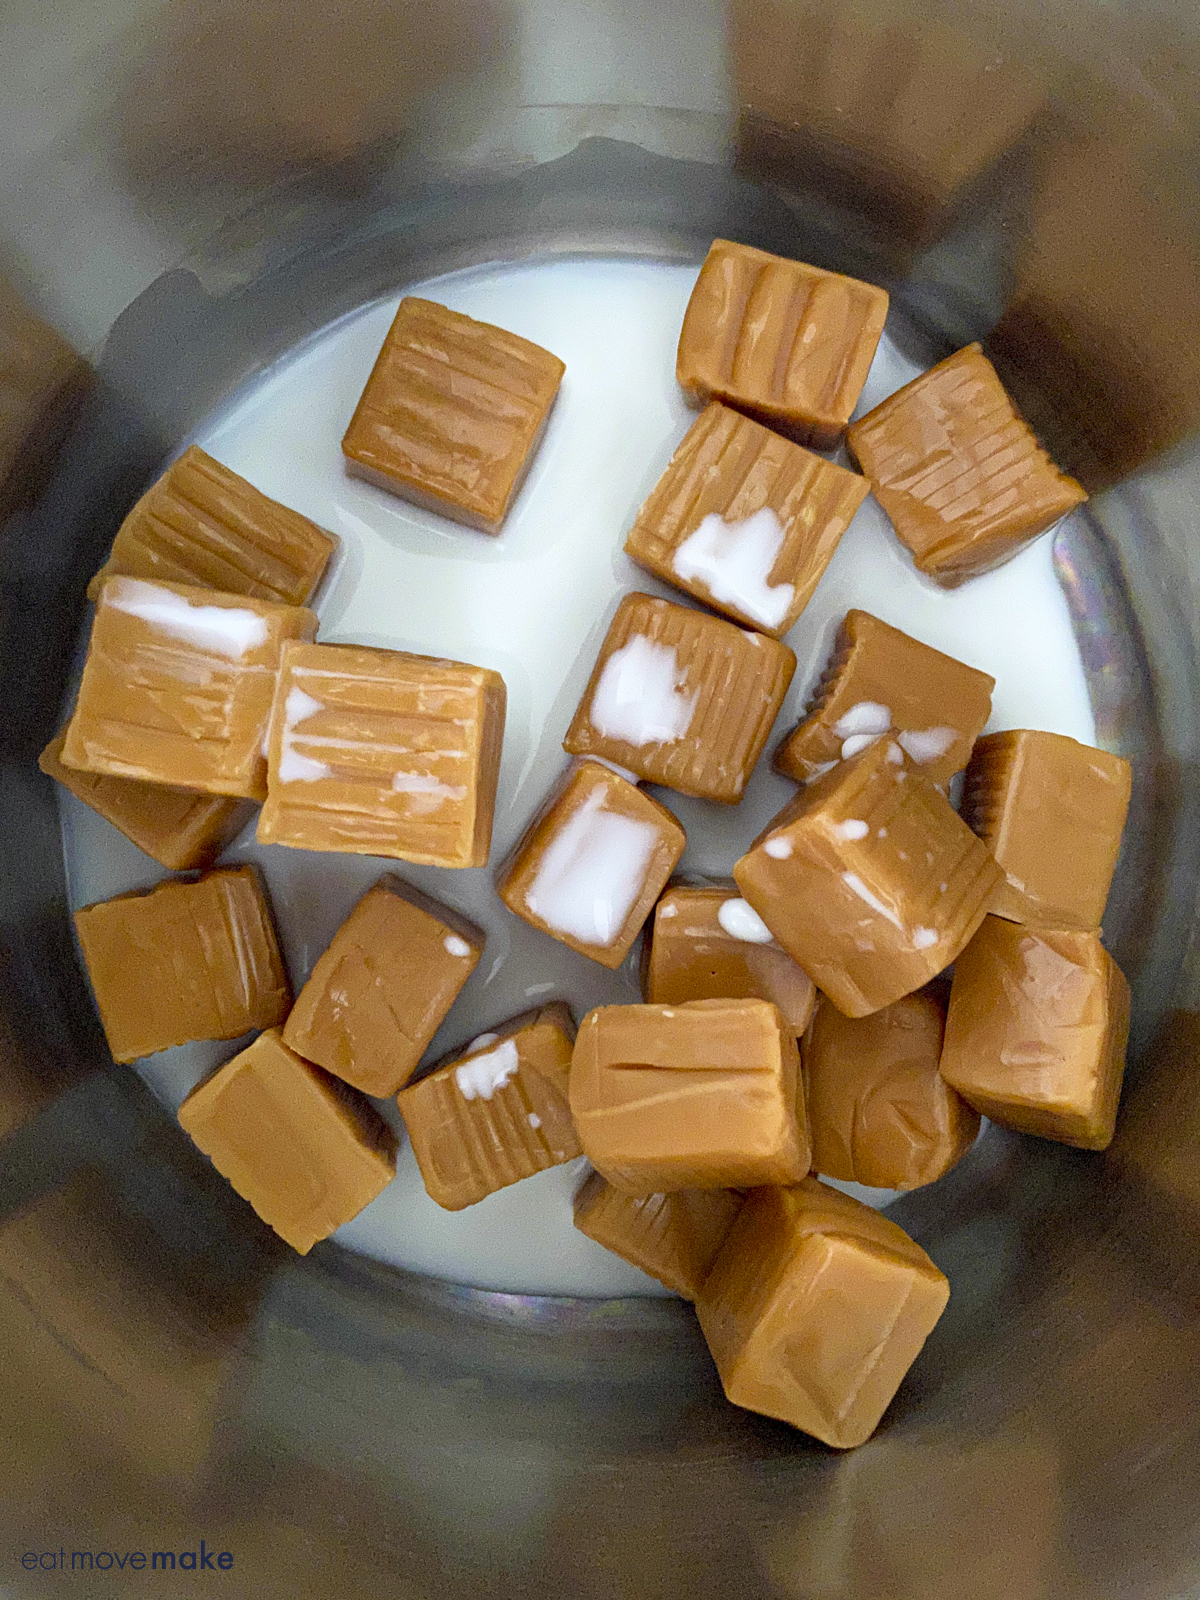 melting caramels in saucepan with milk